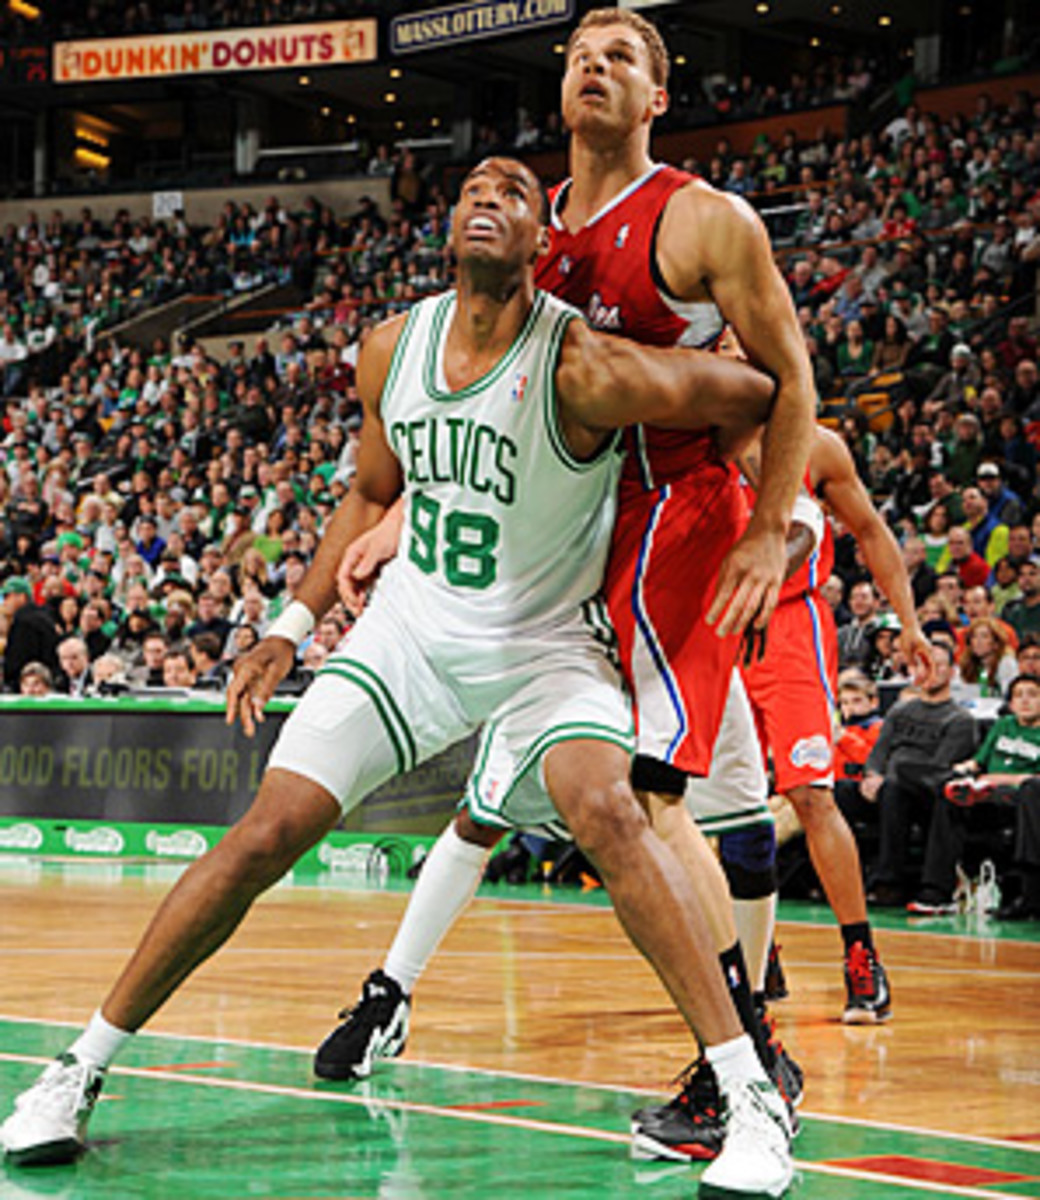 Jason Collins played with the Celtics and Wizards this season, his 12th in the NBA.